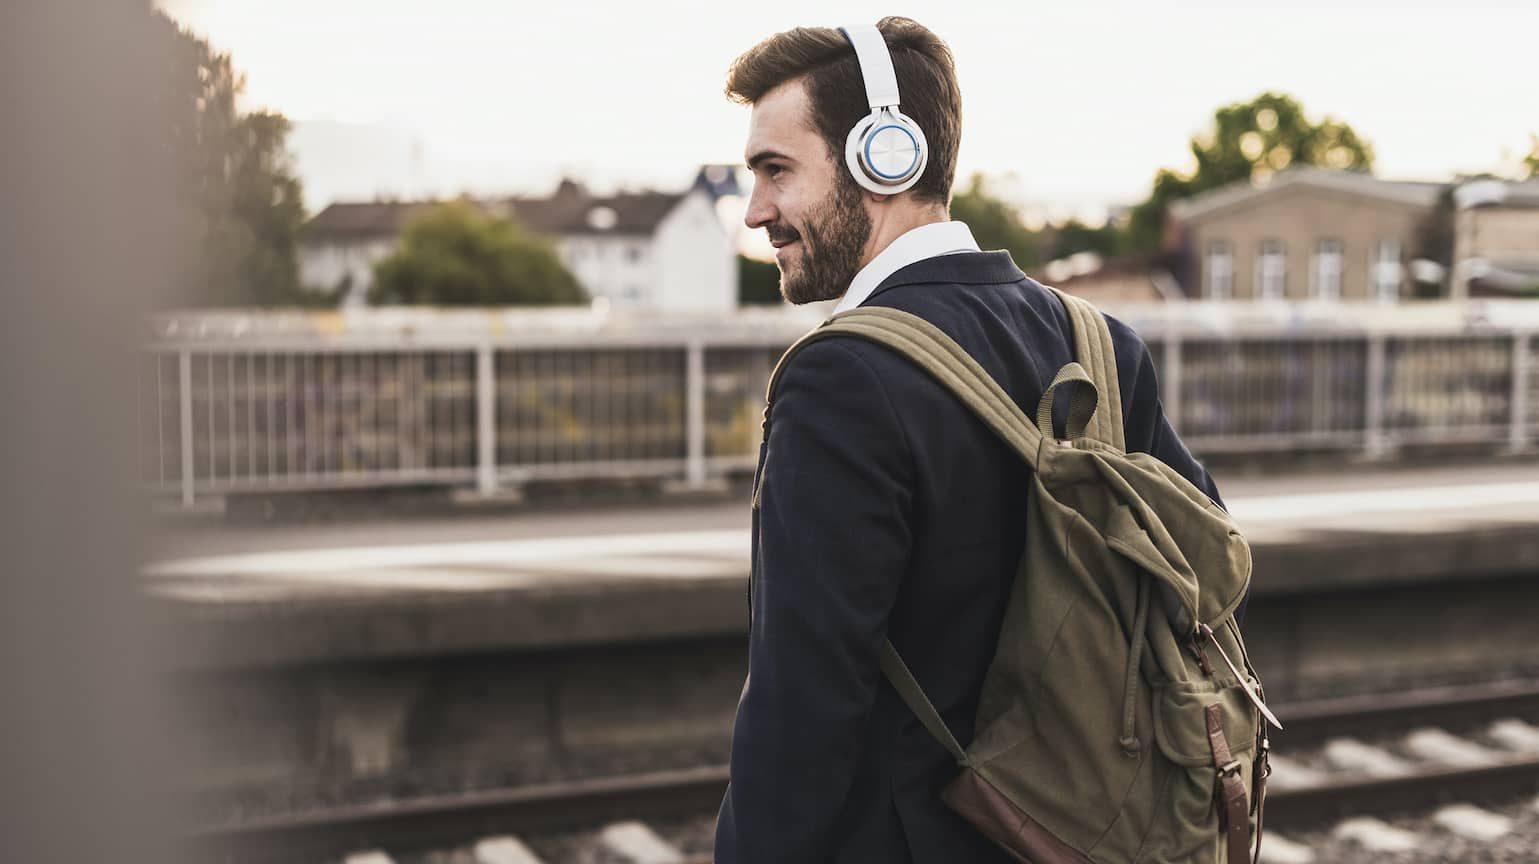 Man wearing headphones waiting for a train